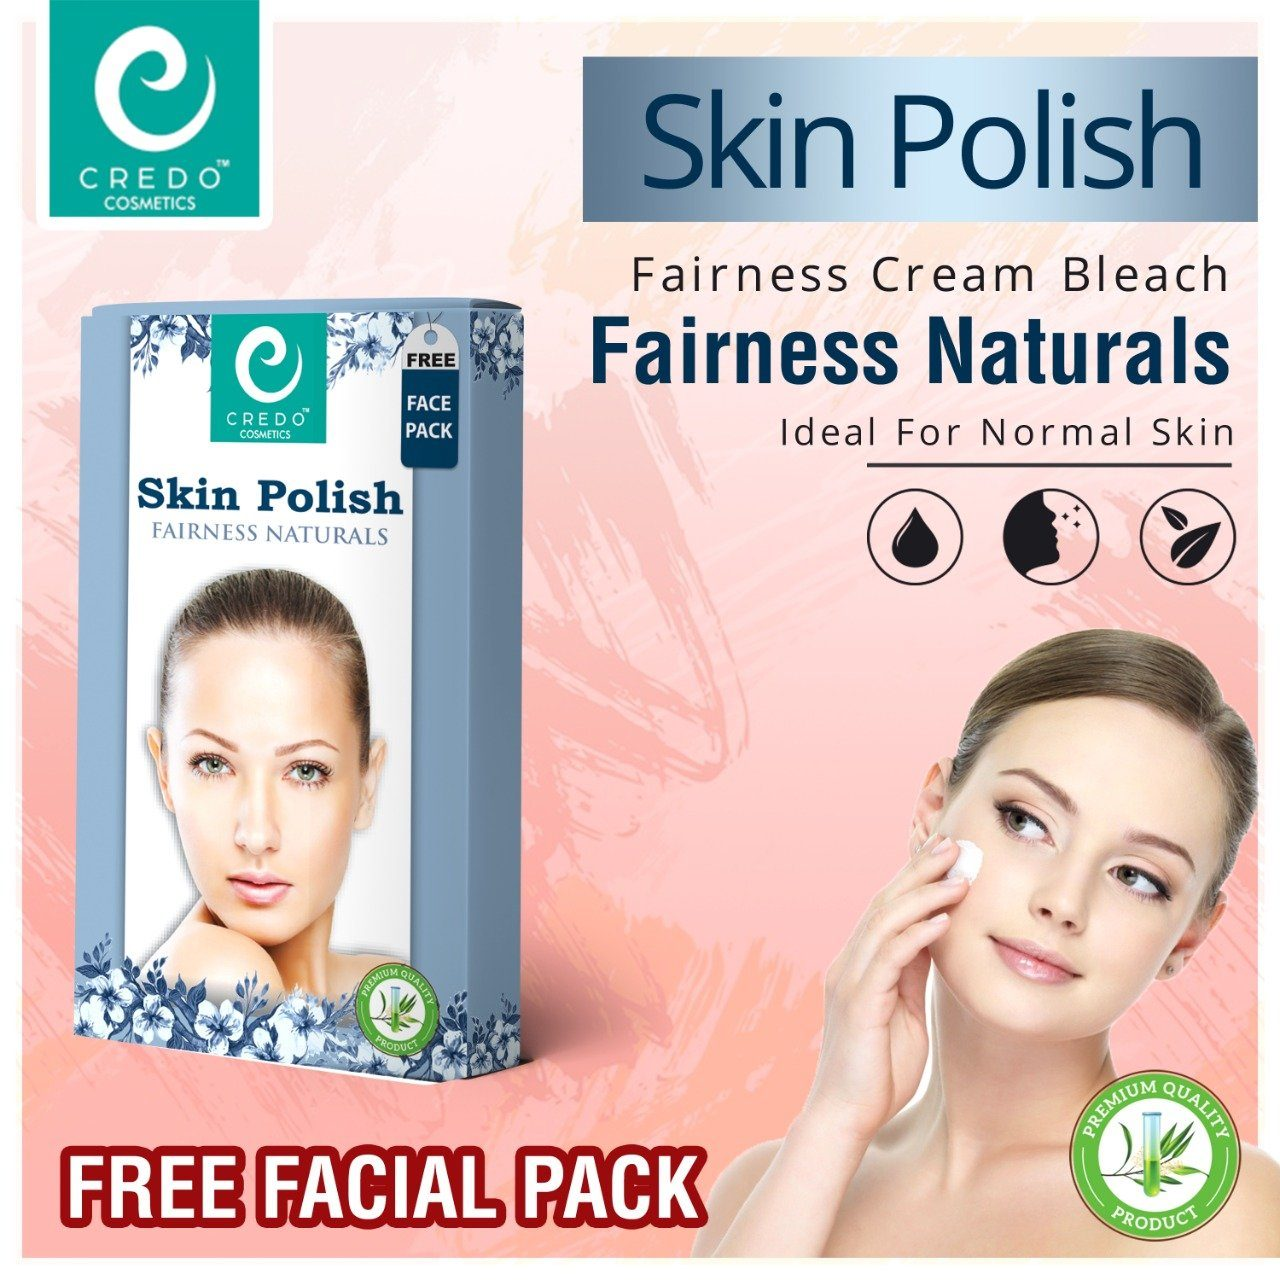 Credo Skin Polish Fairness Naturals With Free Face Pack Health & Beauty Credo Cosmetics